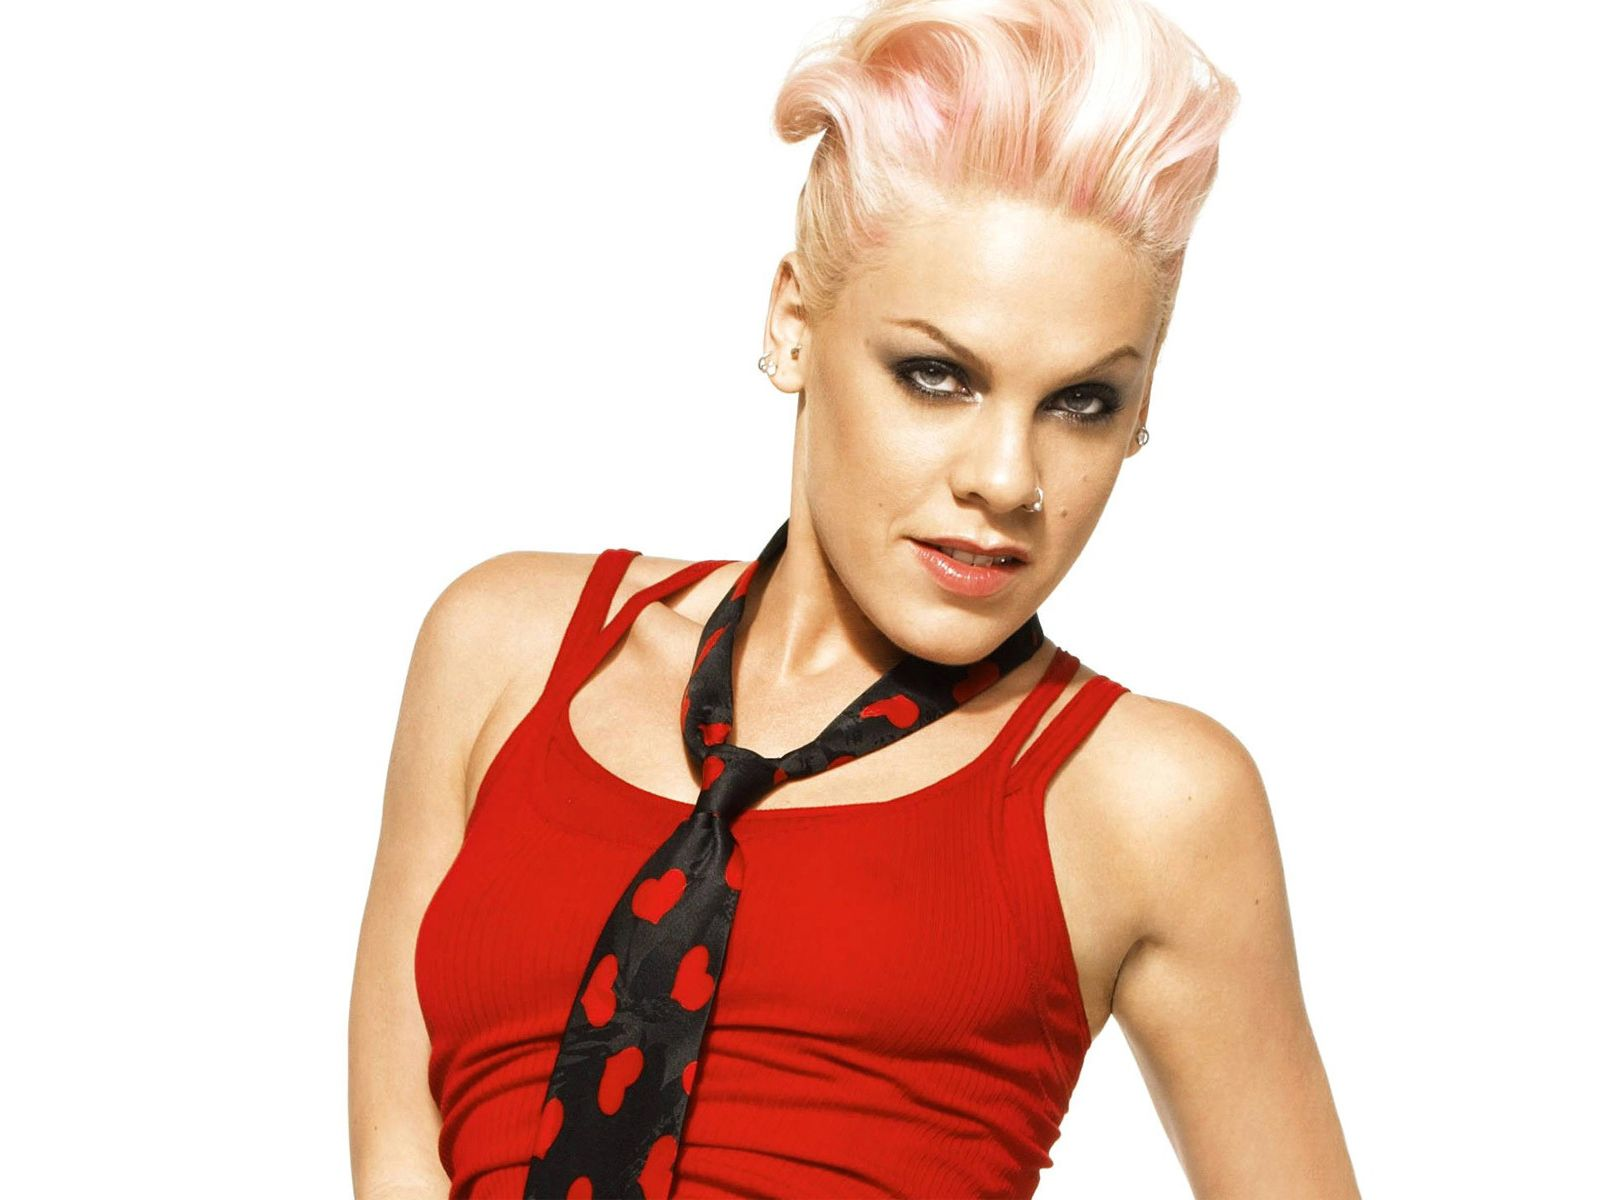 Watch Pink (singer) video